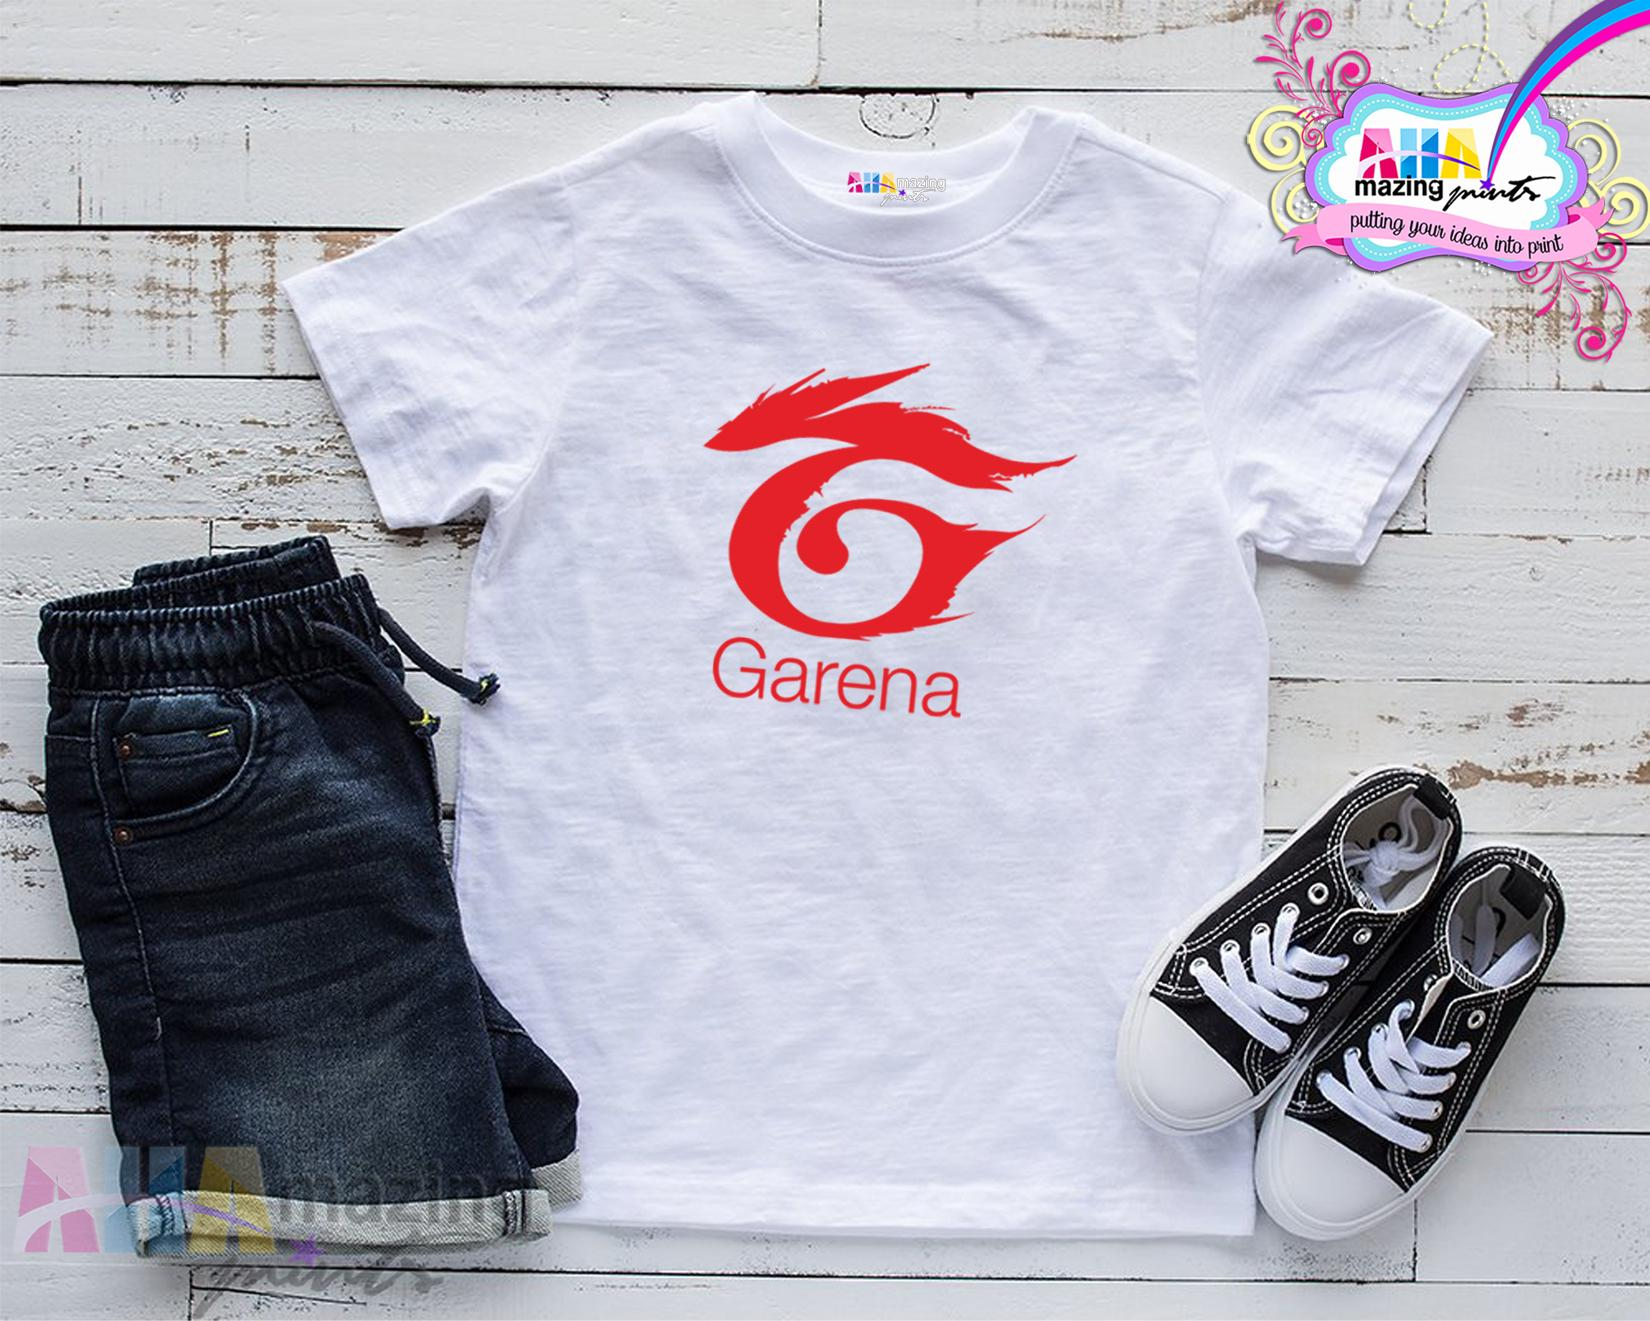 Sell Garena Hoodie Jacket Cheapest Best Quality Ph Store 50 Shell Php 250